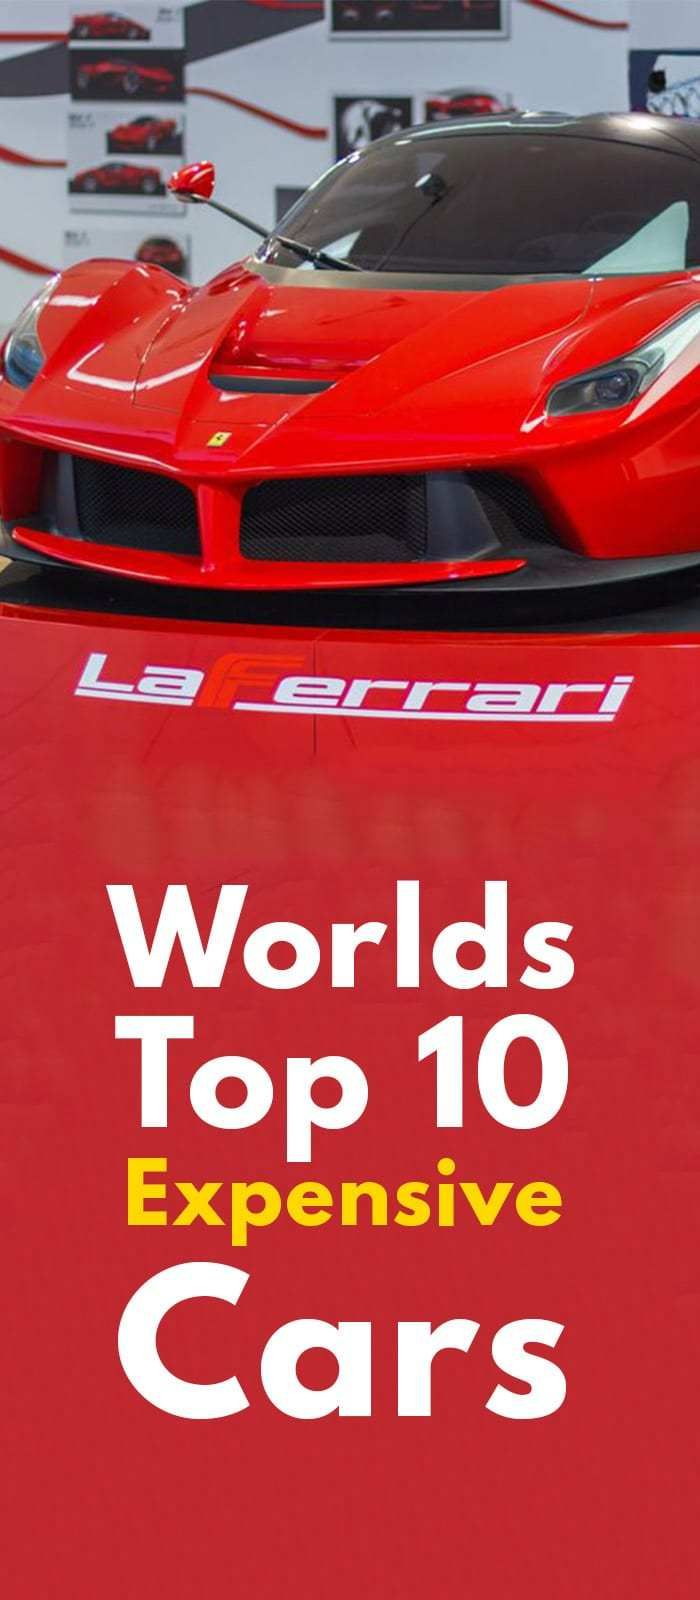 Worlds Top 10 Expensive Car In 2020